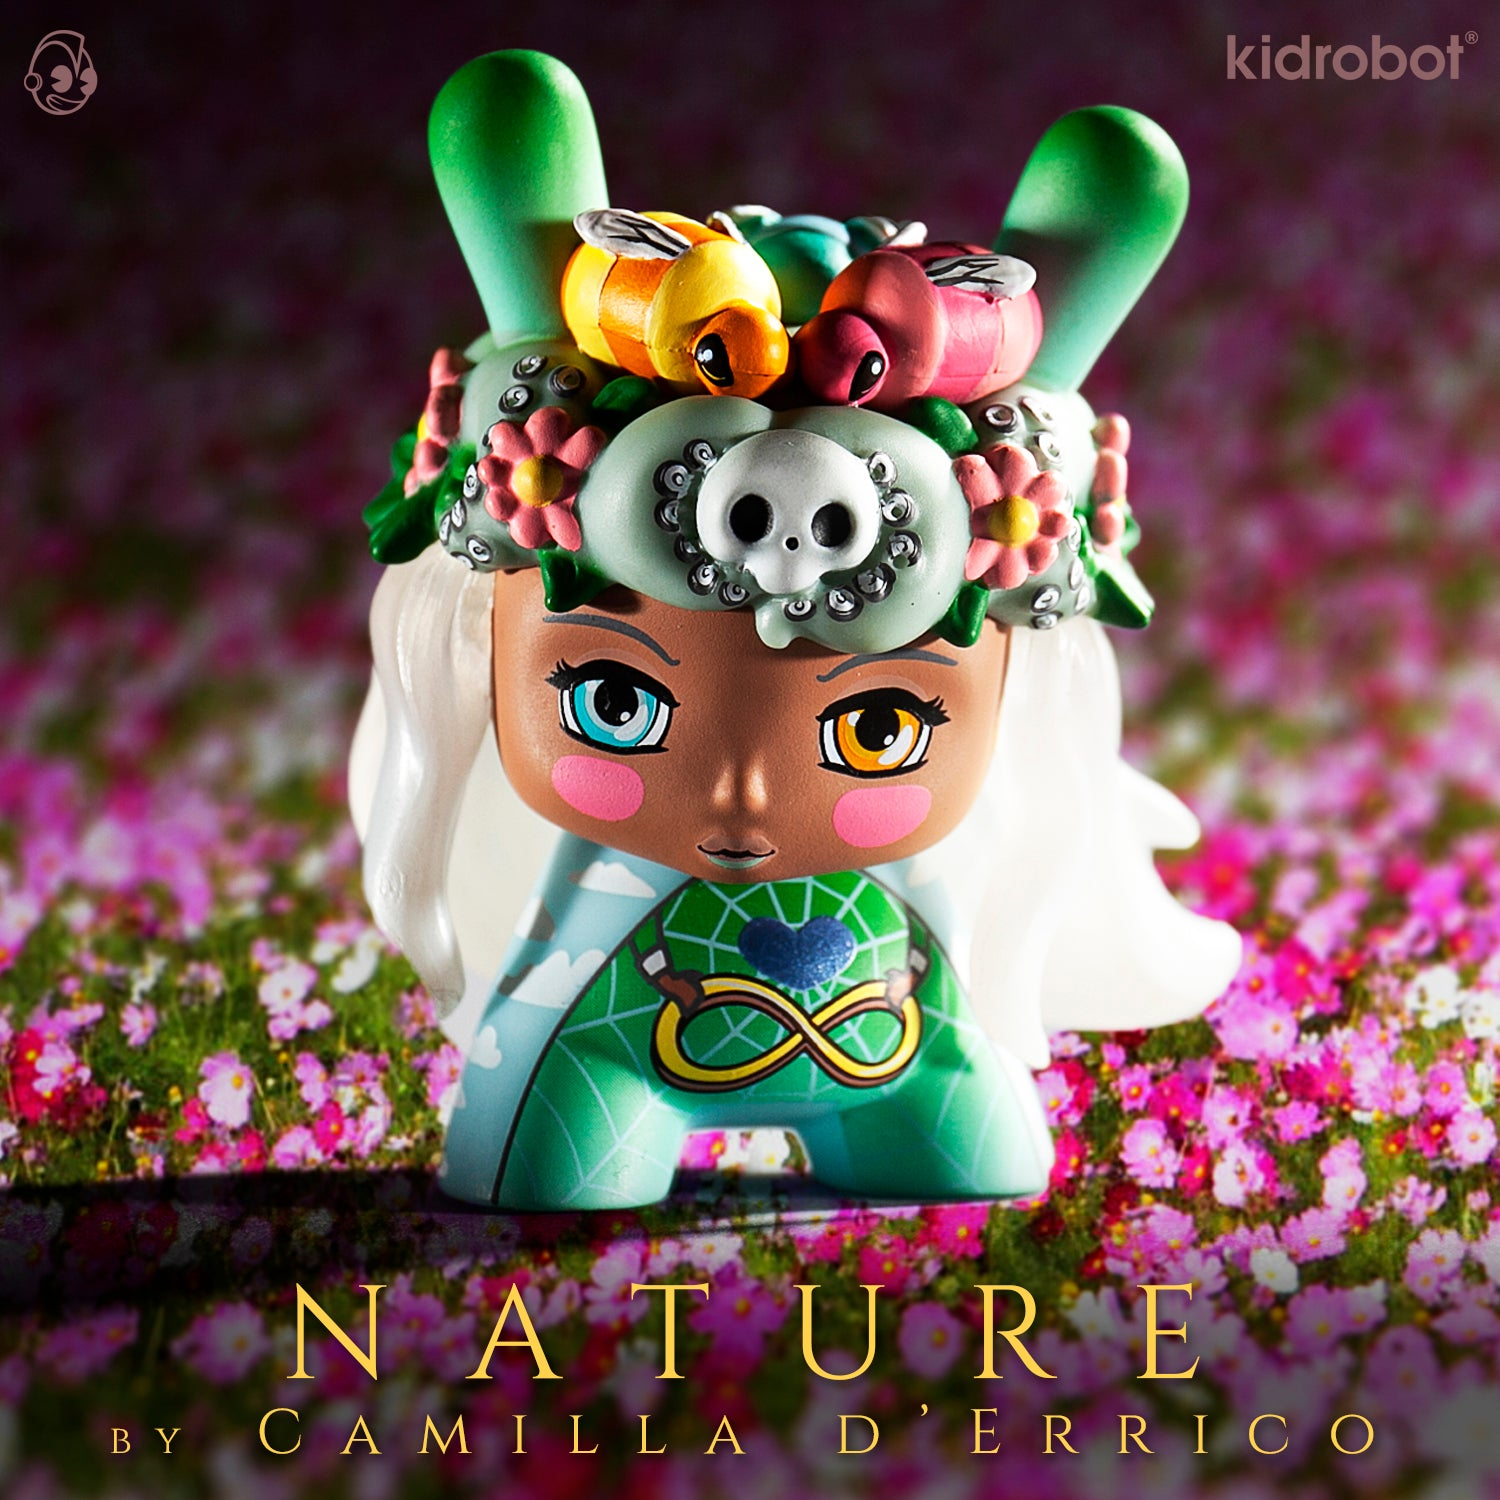 Nature Dunny by Camilla d'Errico